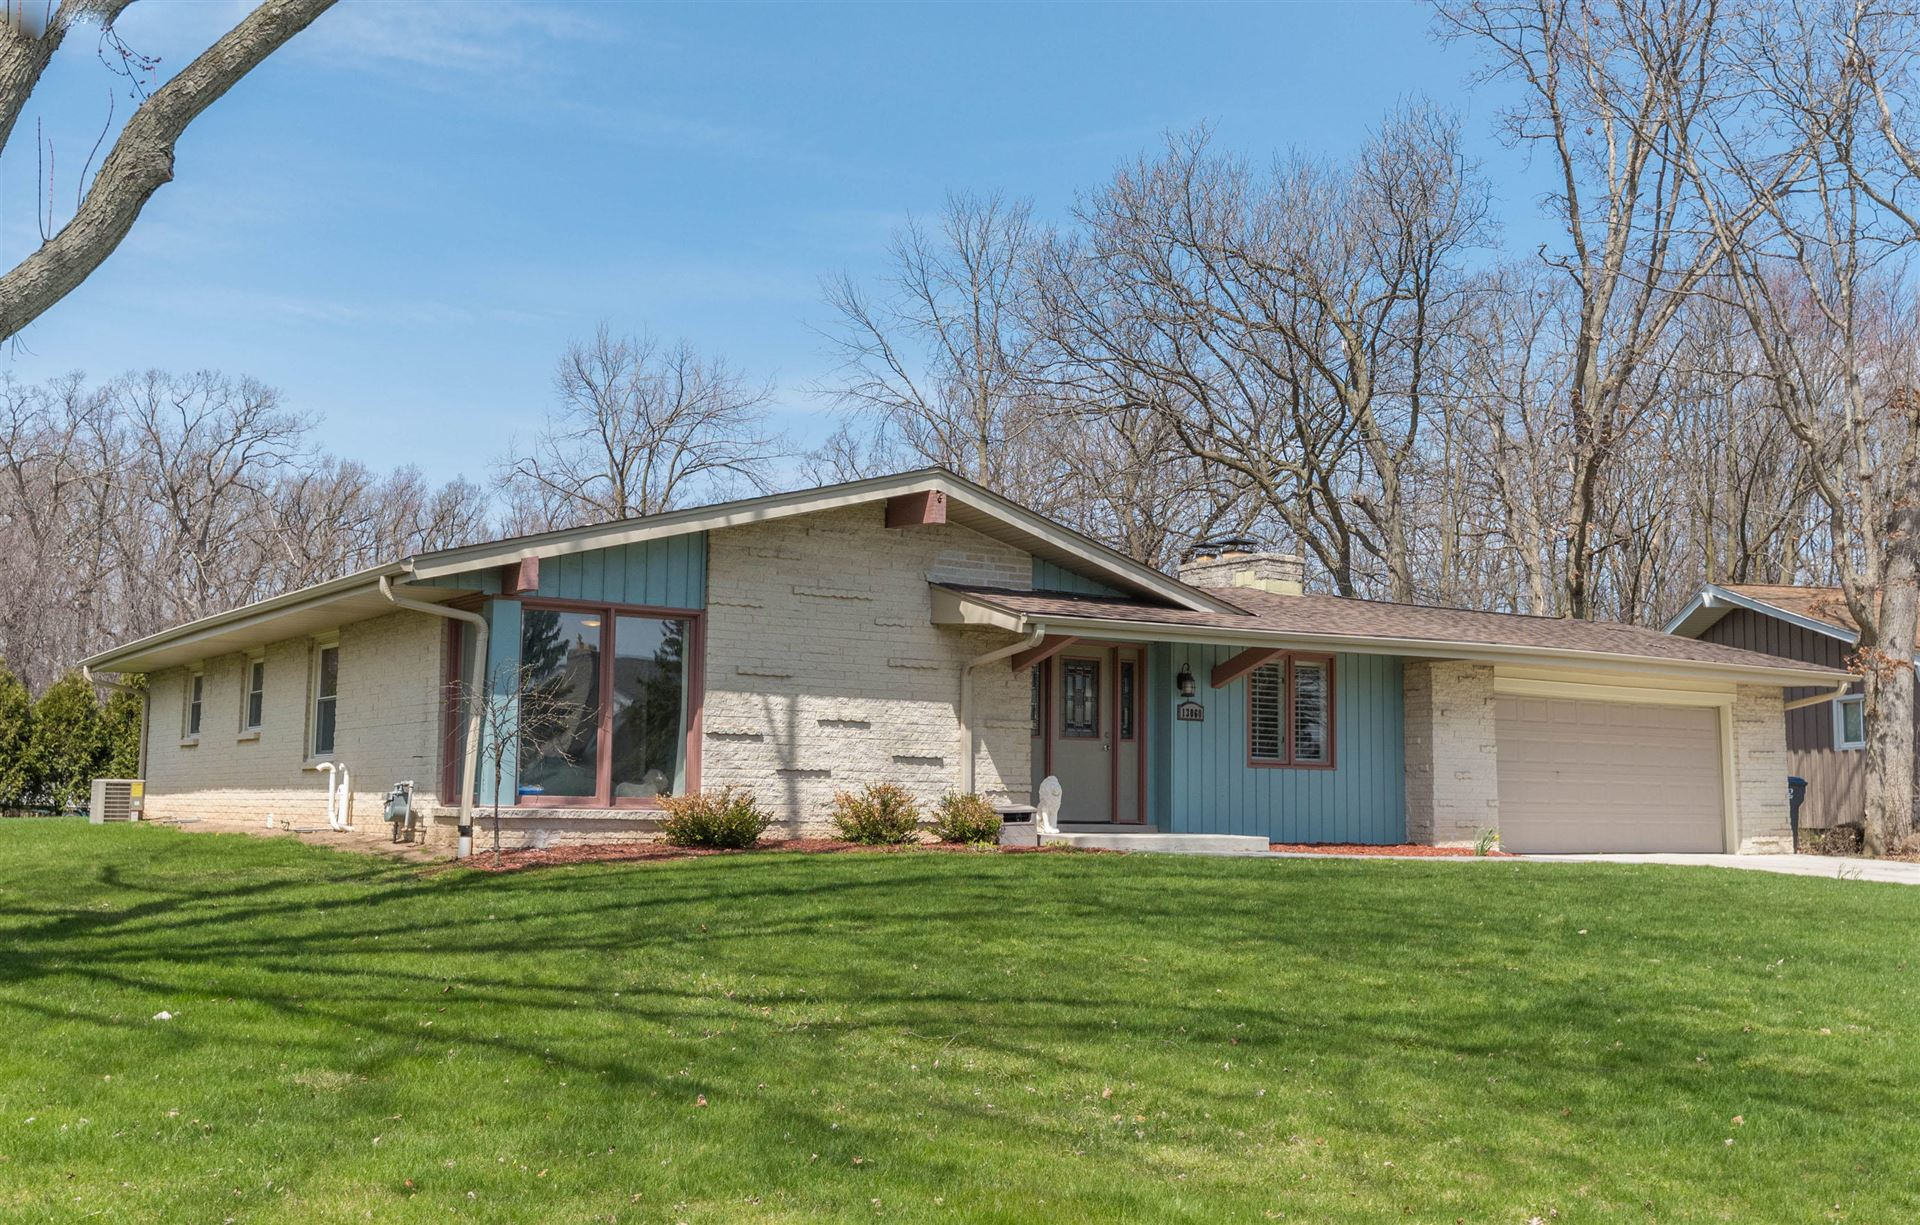 13060 W Brentwood Dr, New Berlin, WI 53151 - #: 1690518